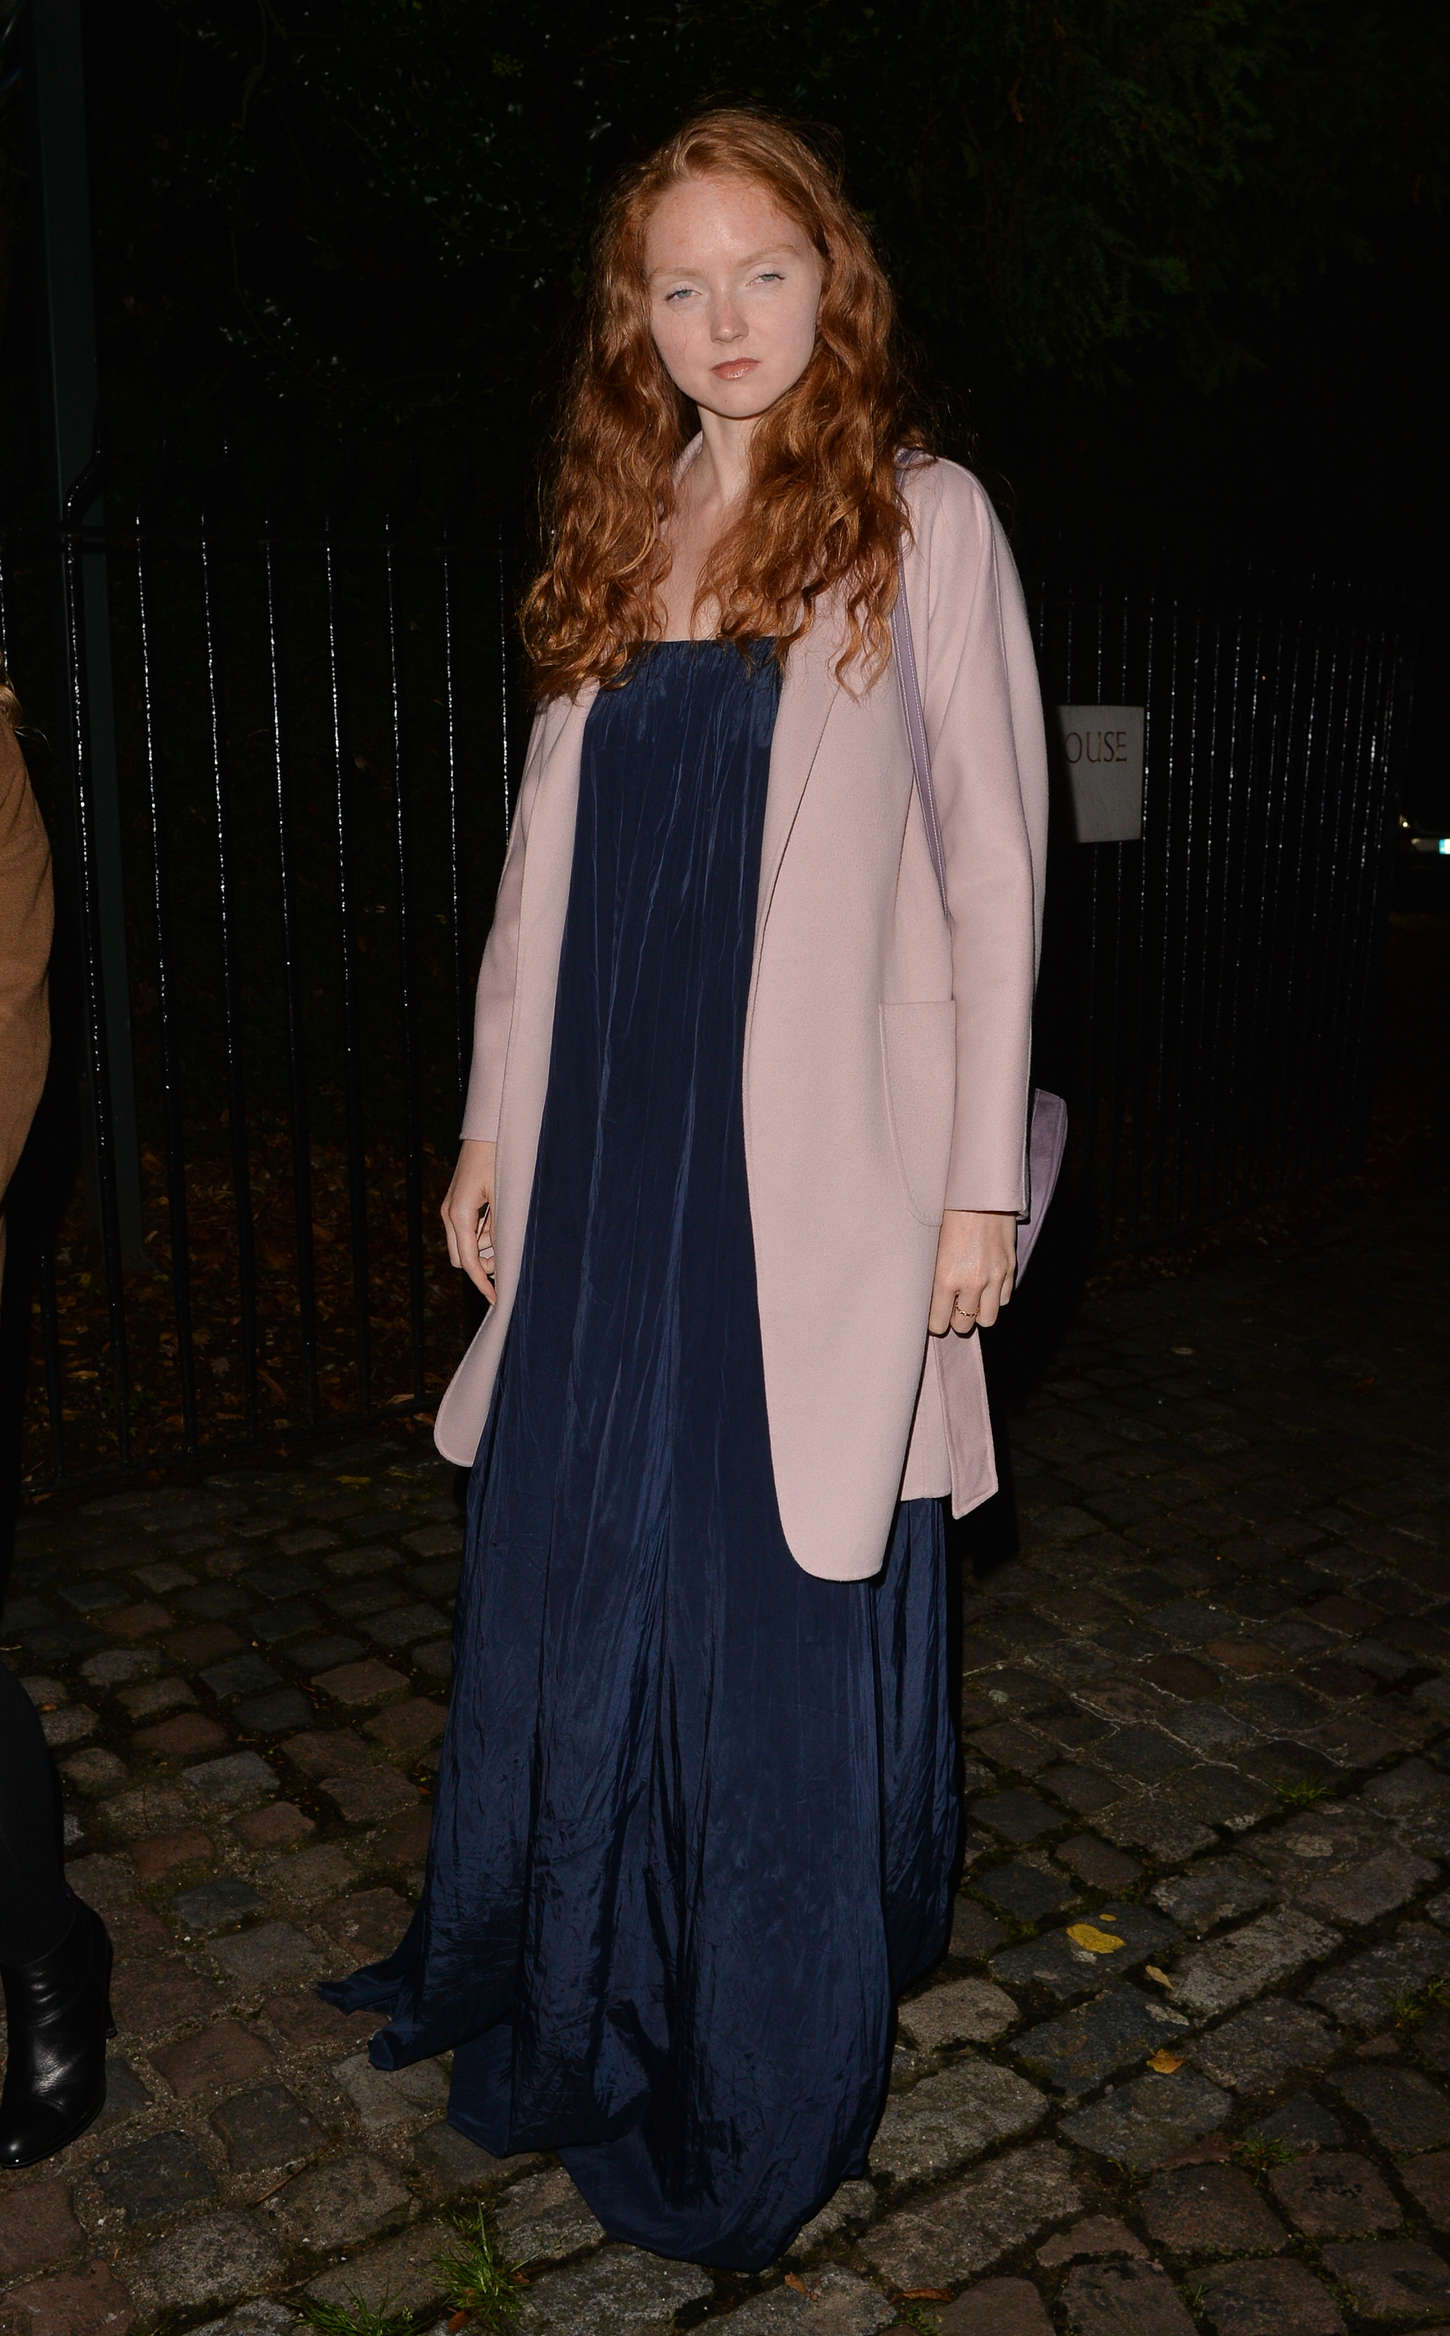 Lily Cole American Ambassadors Vogue Party during LFW in London